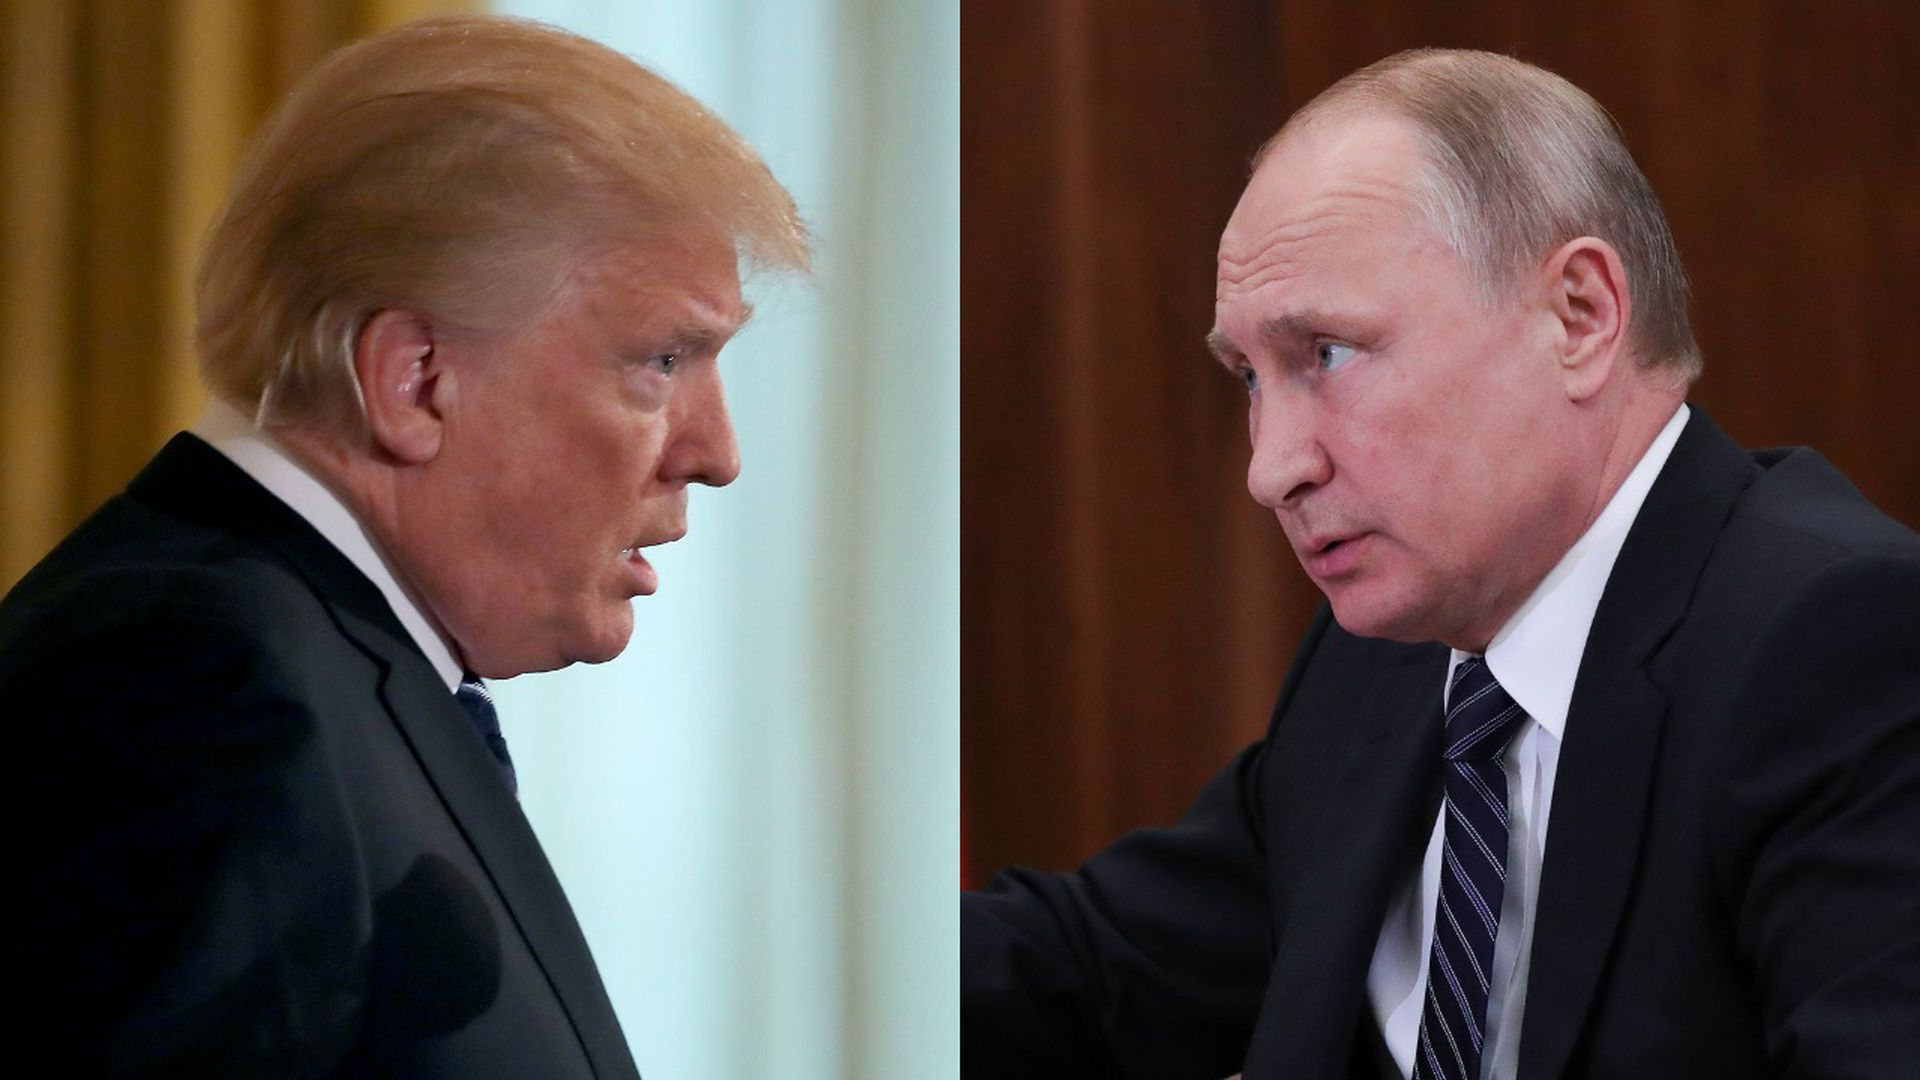 Russian President Vladimir Putin and President Donald Trump